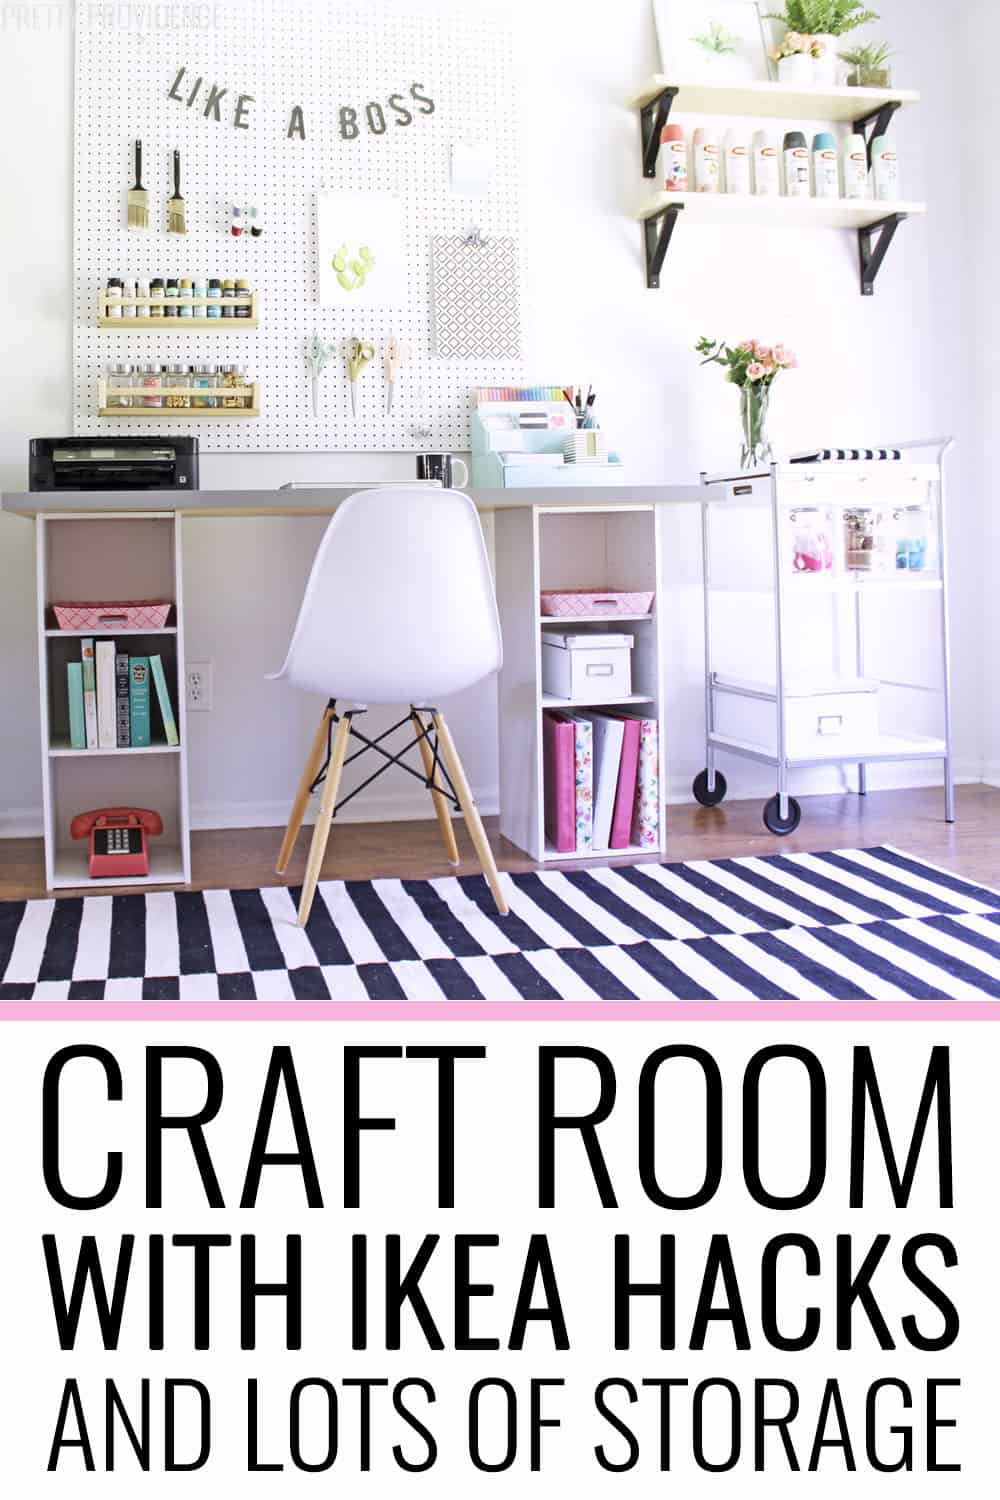 Craft room organized with storage for craft supplies and IKEA hacks!